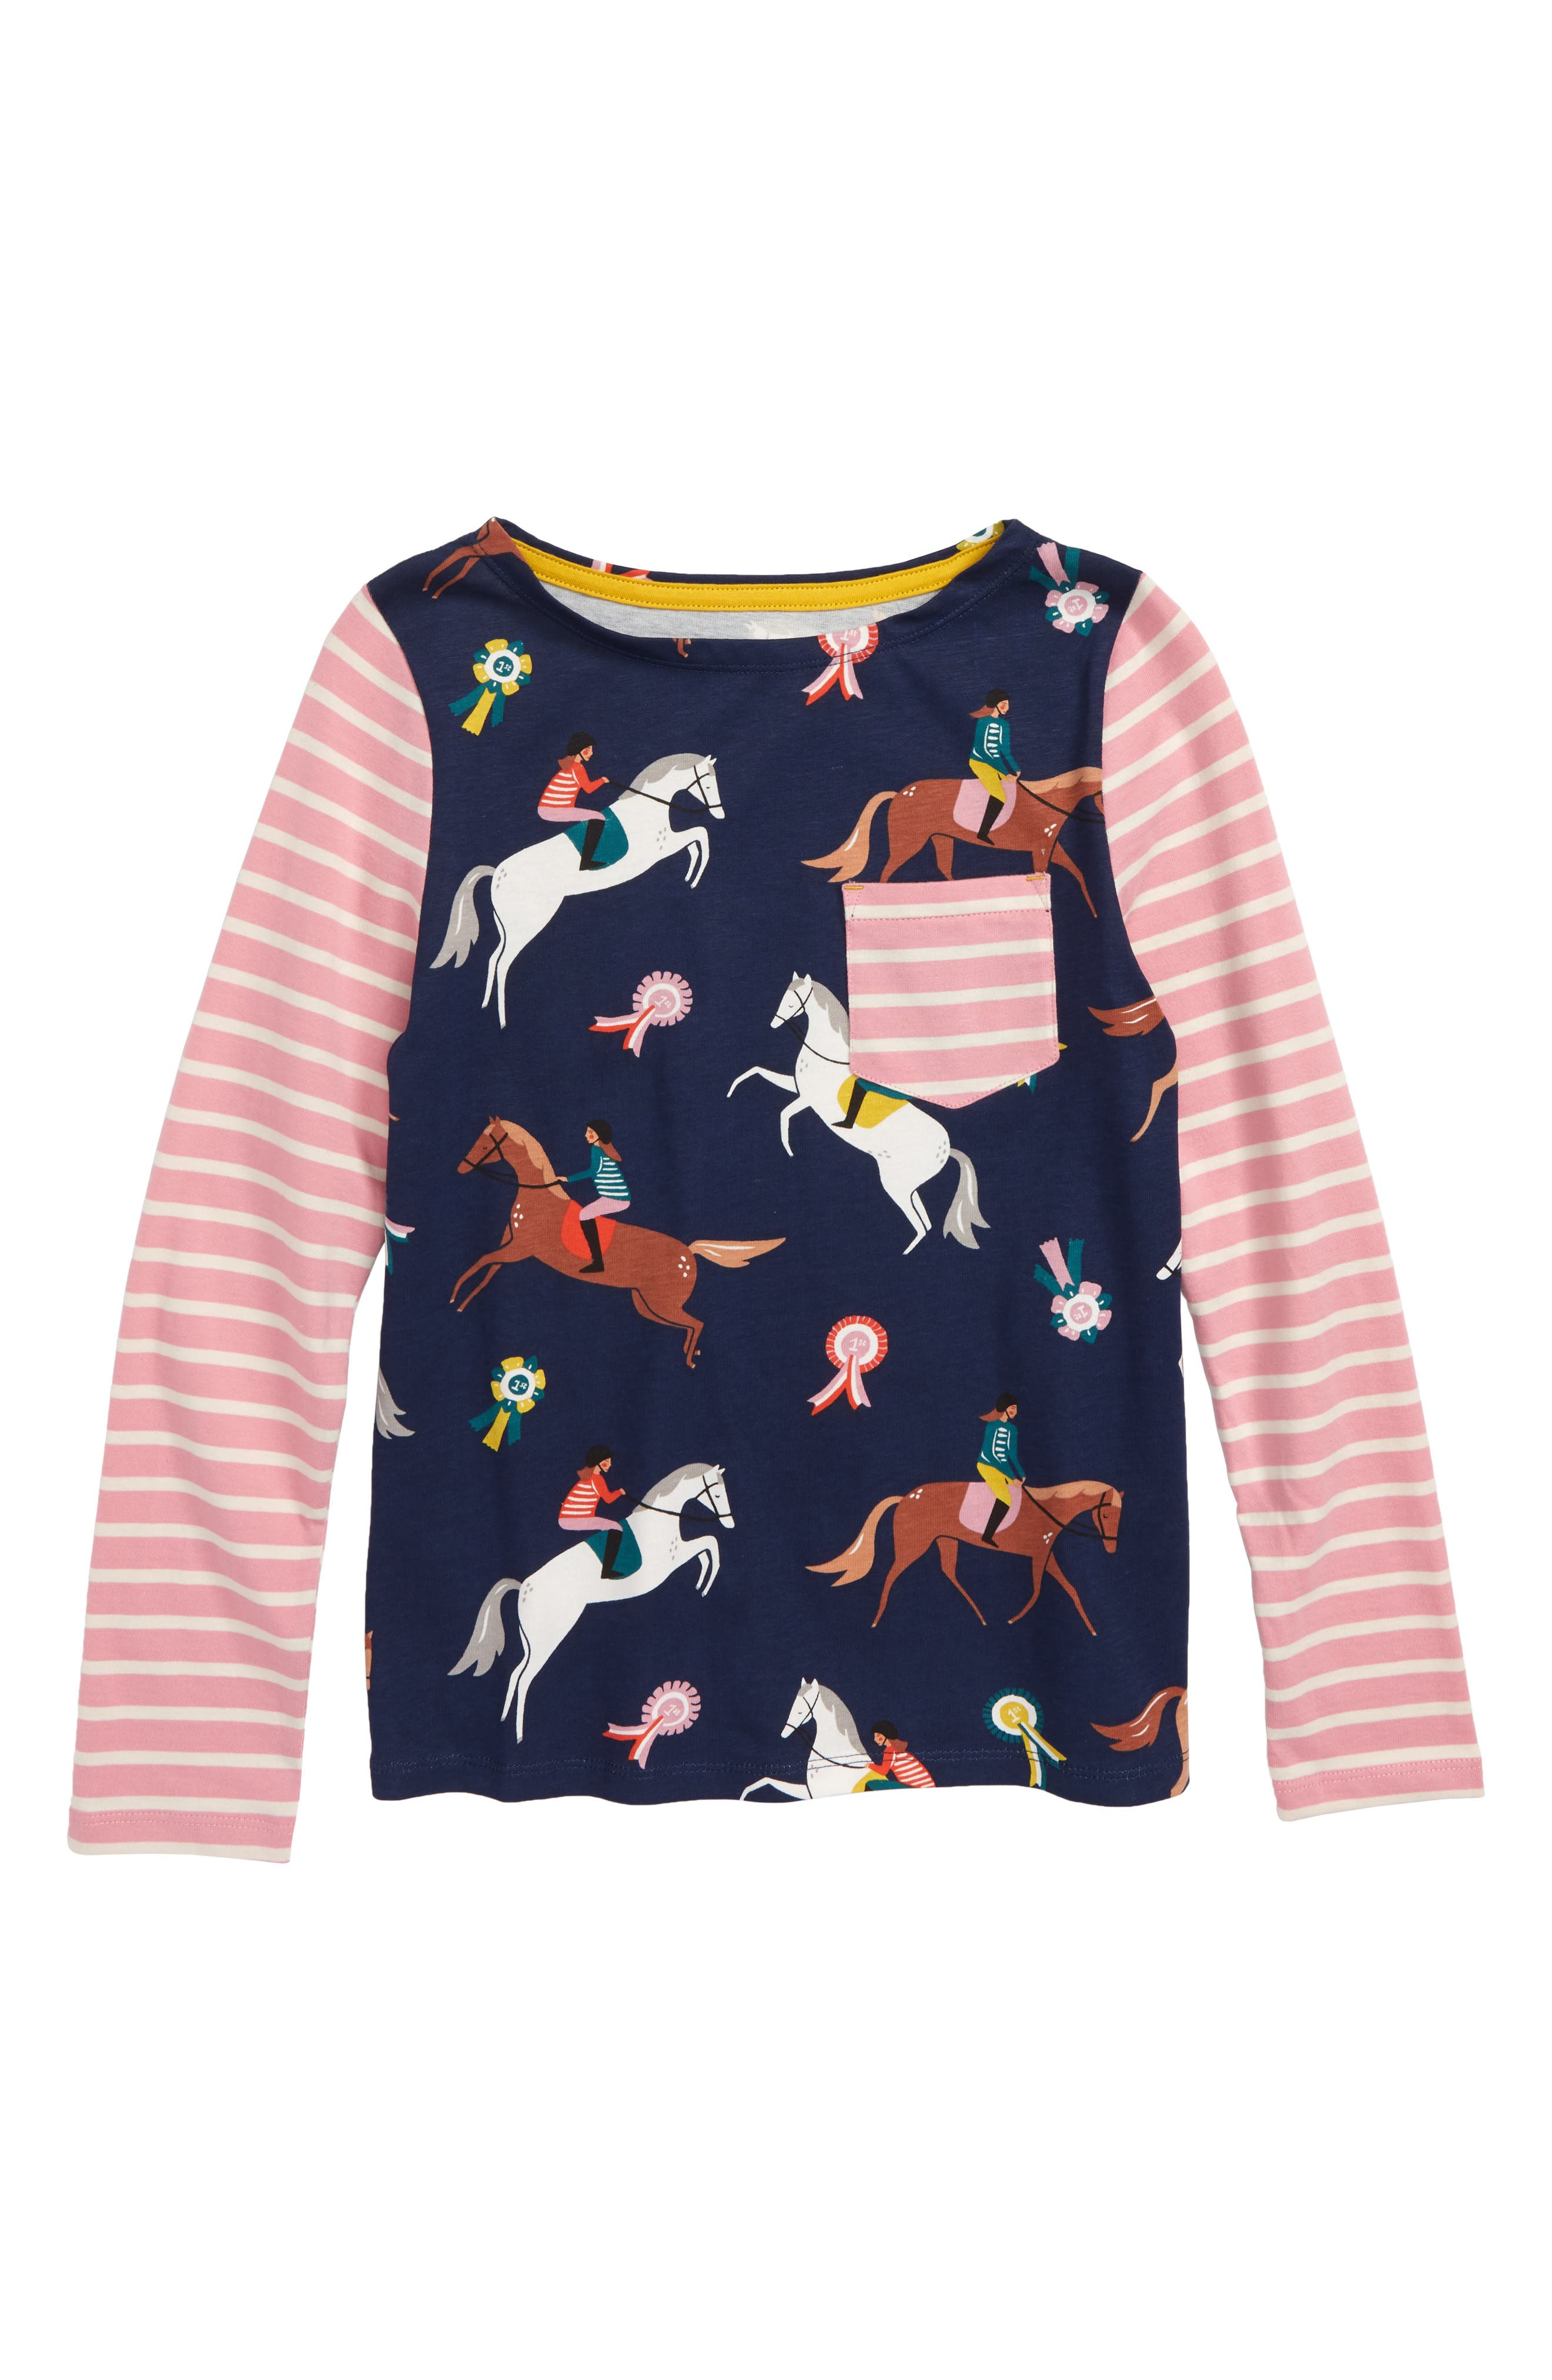 Hotchpotch T-Shirt,                         Main,                         color, SCHOOL NAVY JUMPING PONIES